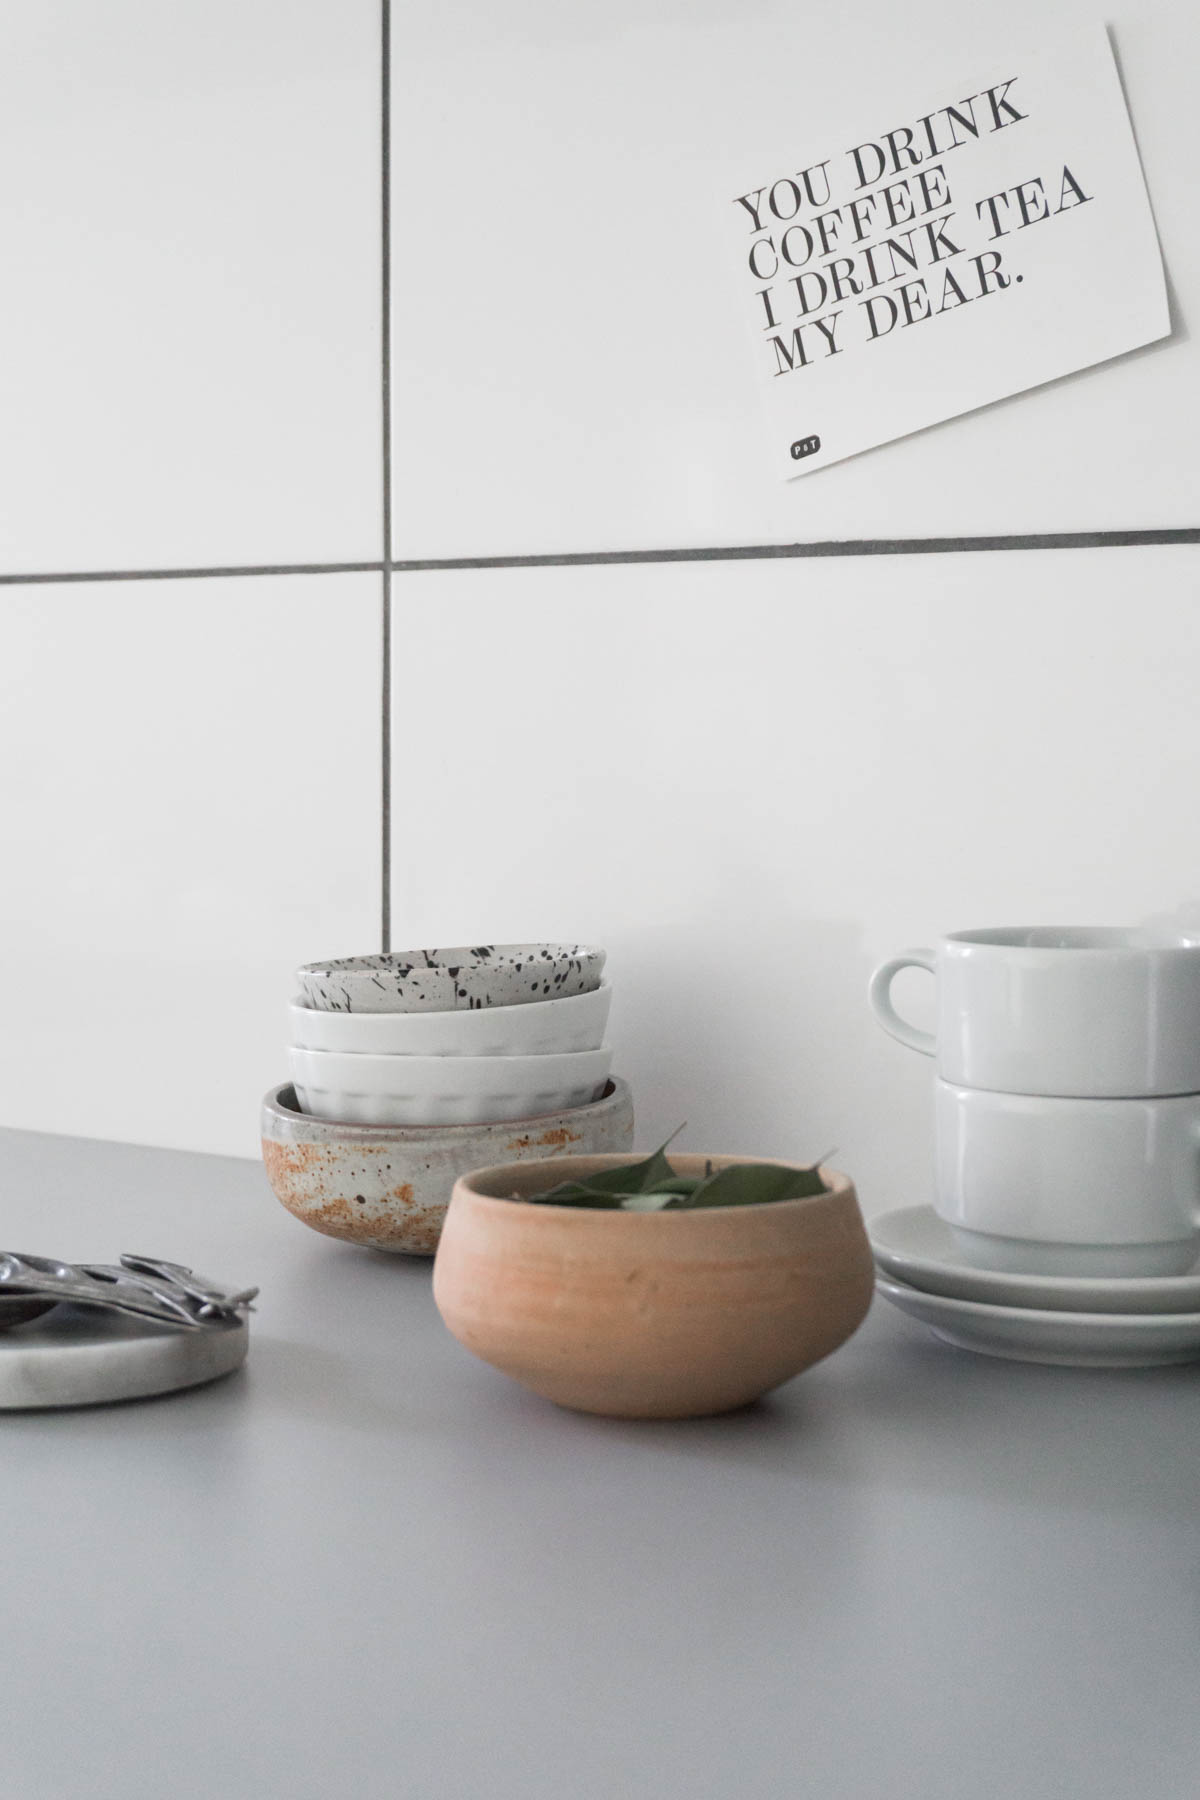 Ikea Kitchen Design Blog Small Kitchen Scandinavian Design Minimal Ikea White Rg